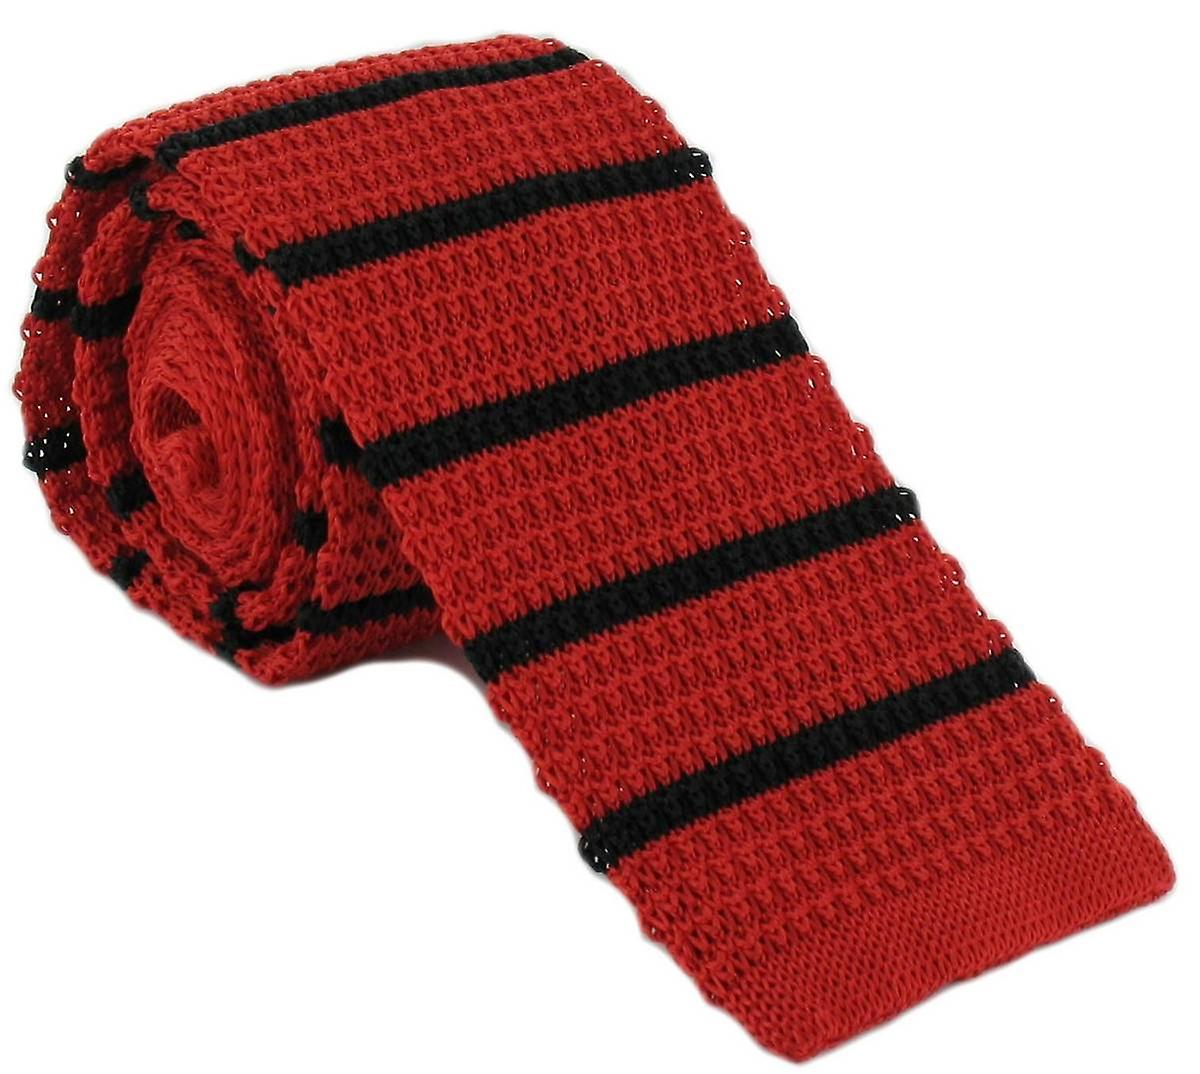 Michelsons of London Silk Knitted Striped Skinny Tie - Red/Black